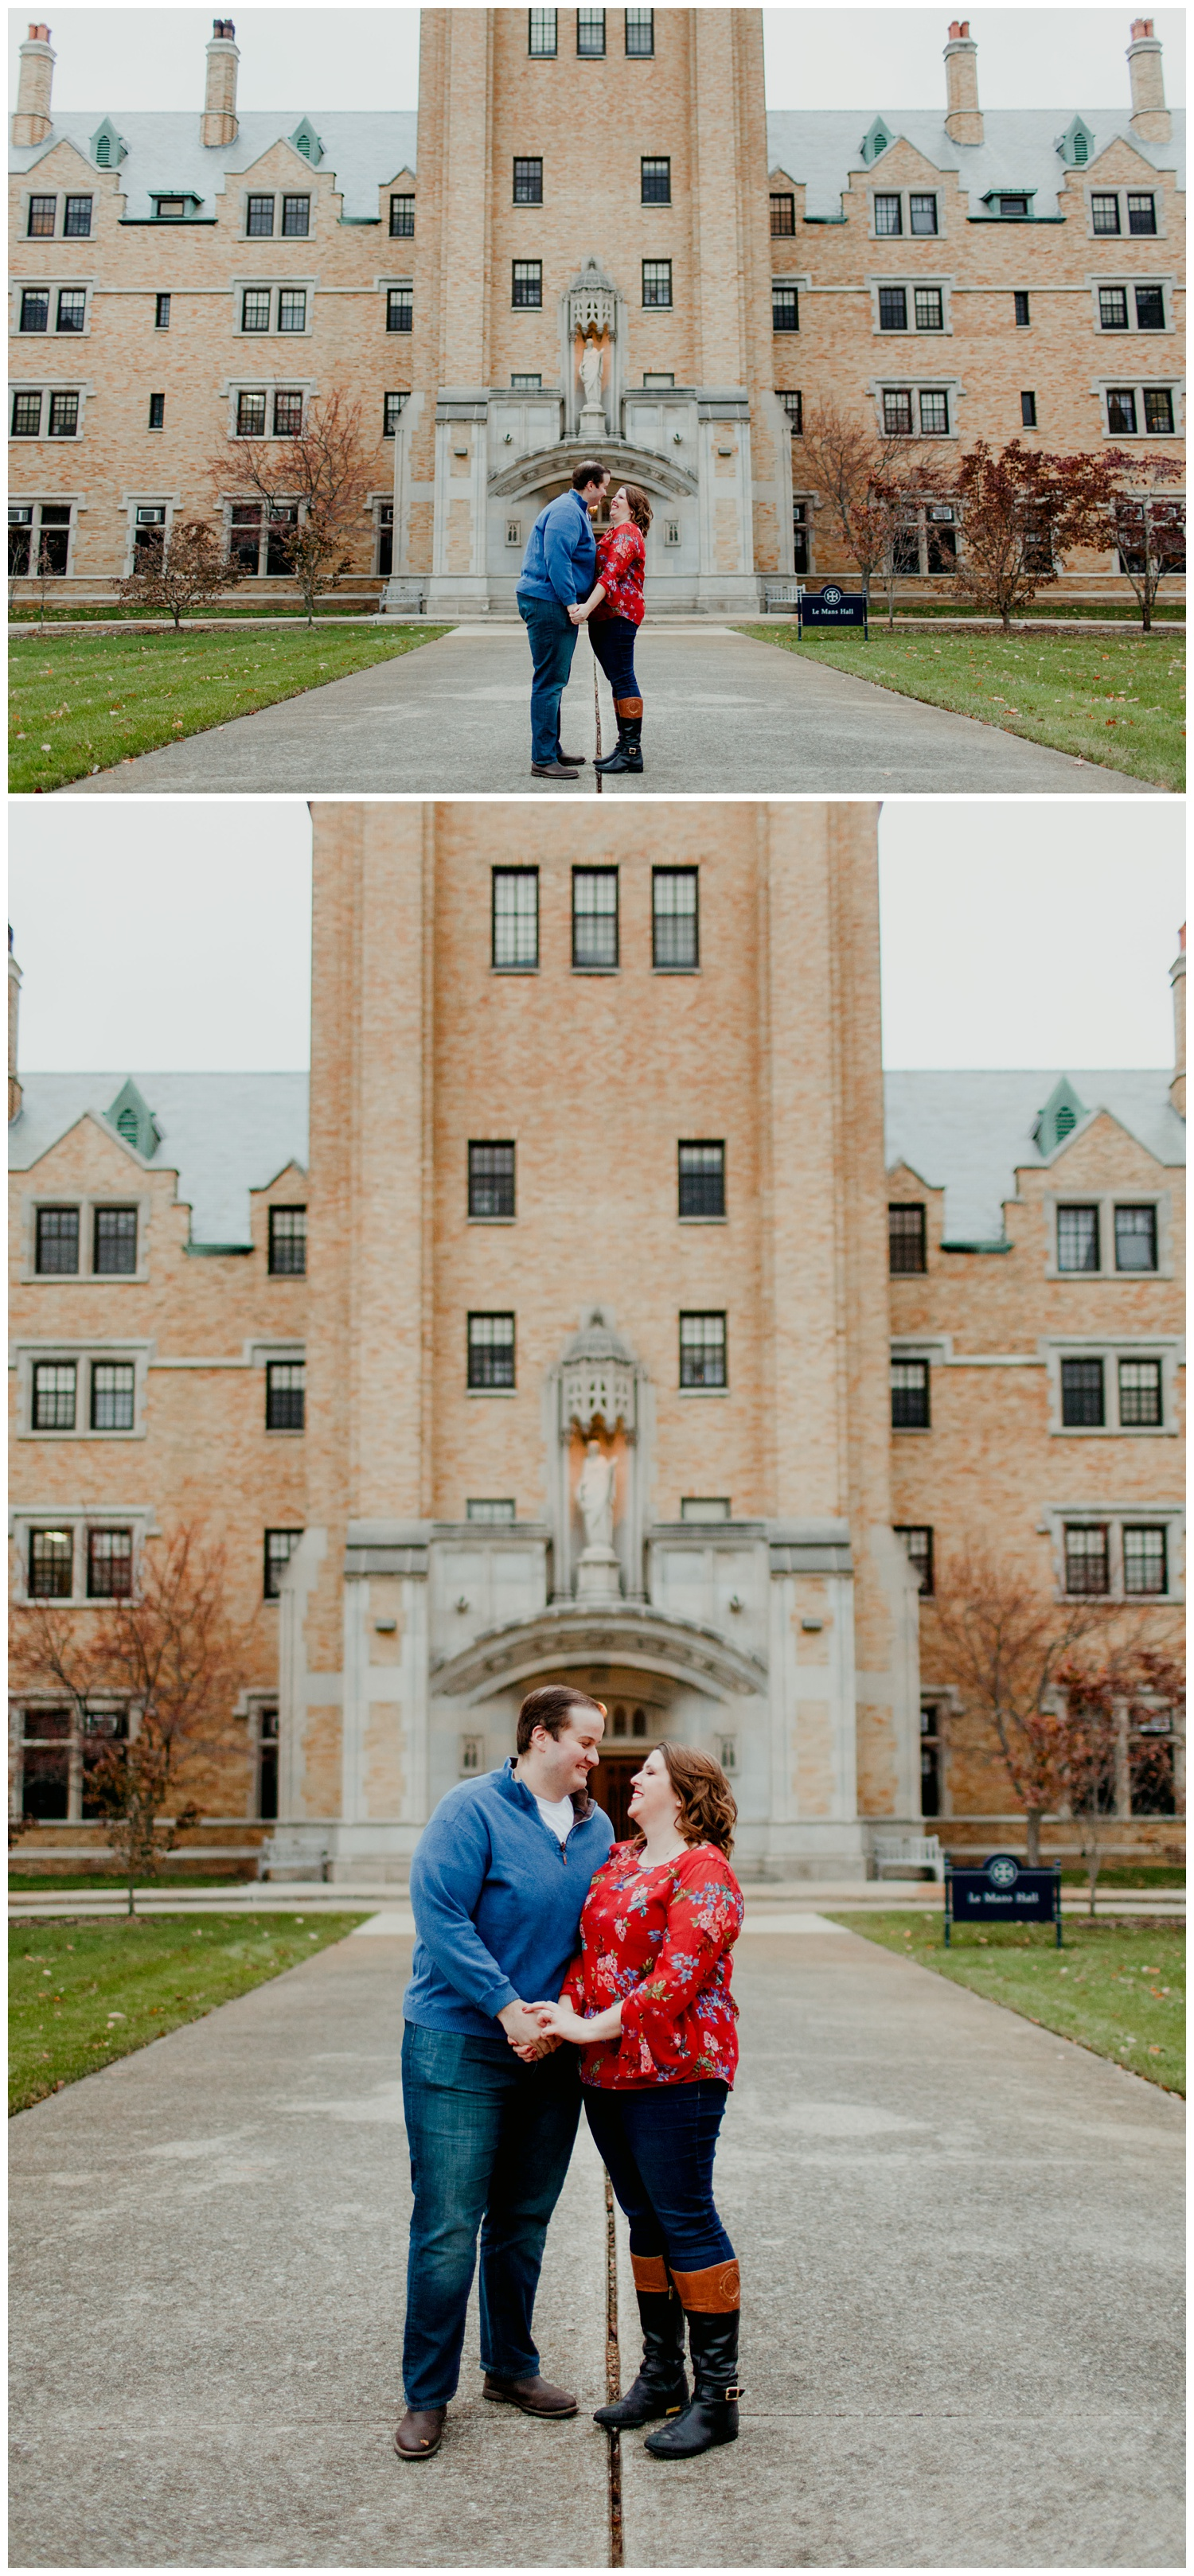 Saint mary's college campus wedding photographer southbend mishawaka granger2.jpg